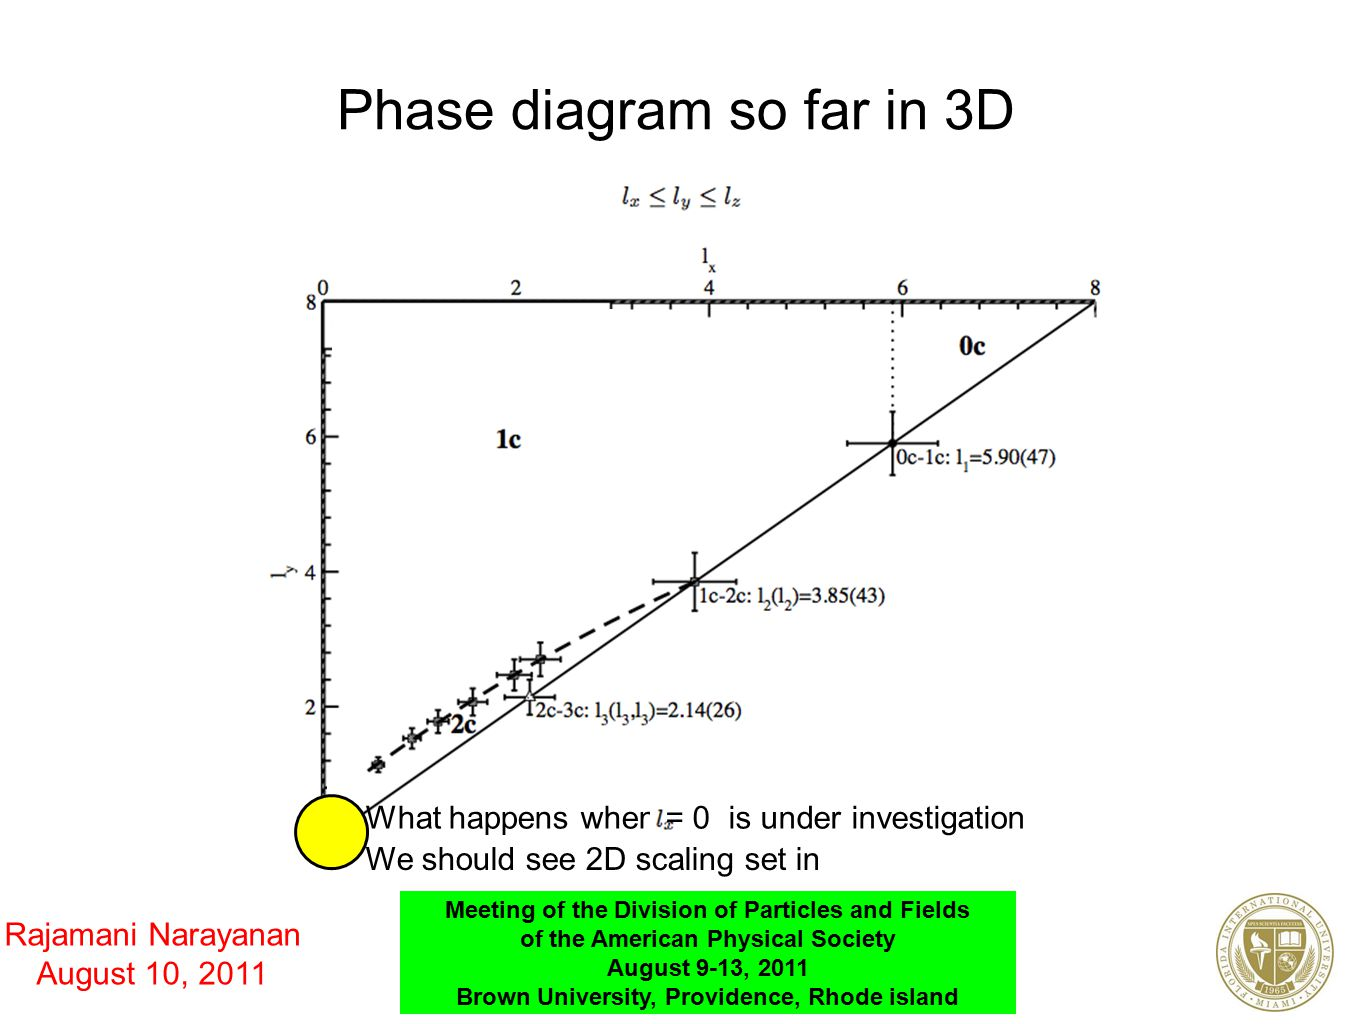 Rajamani Narayanan August 10, 2011 Meeting of the Division of Particles and Fields of the American Physical Society August 9-13, 2011 Brown University, Providence, Rhode island Phase diagram so far in 3D What happens when= 0 is under investigation We should see 2D scaling set in